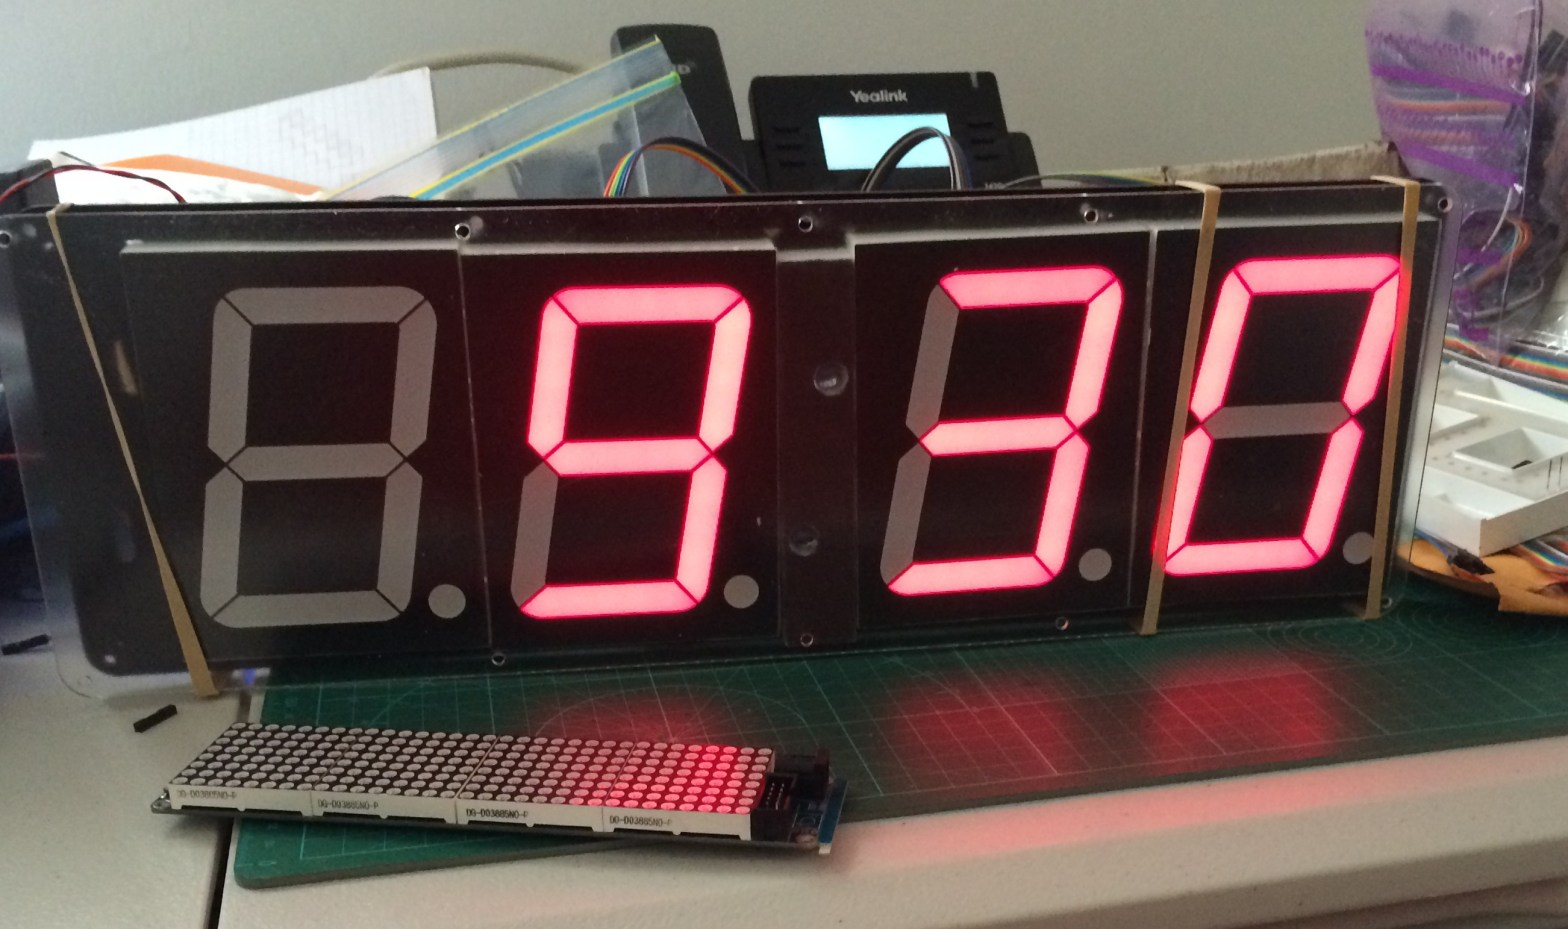 photo of clock made of 4 inch 7 segment displays showing the time of 9:30